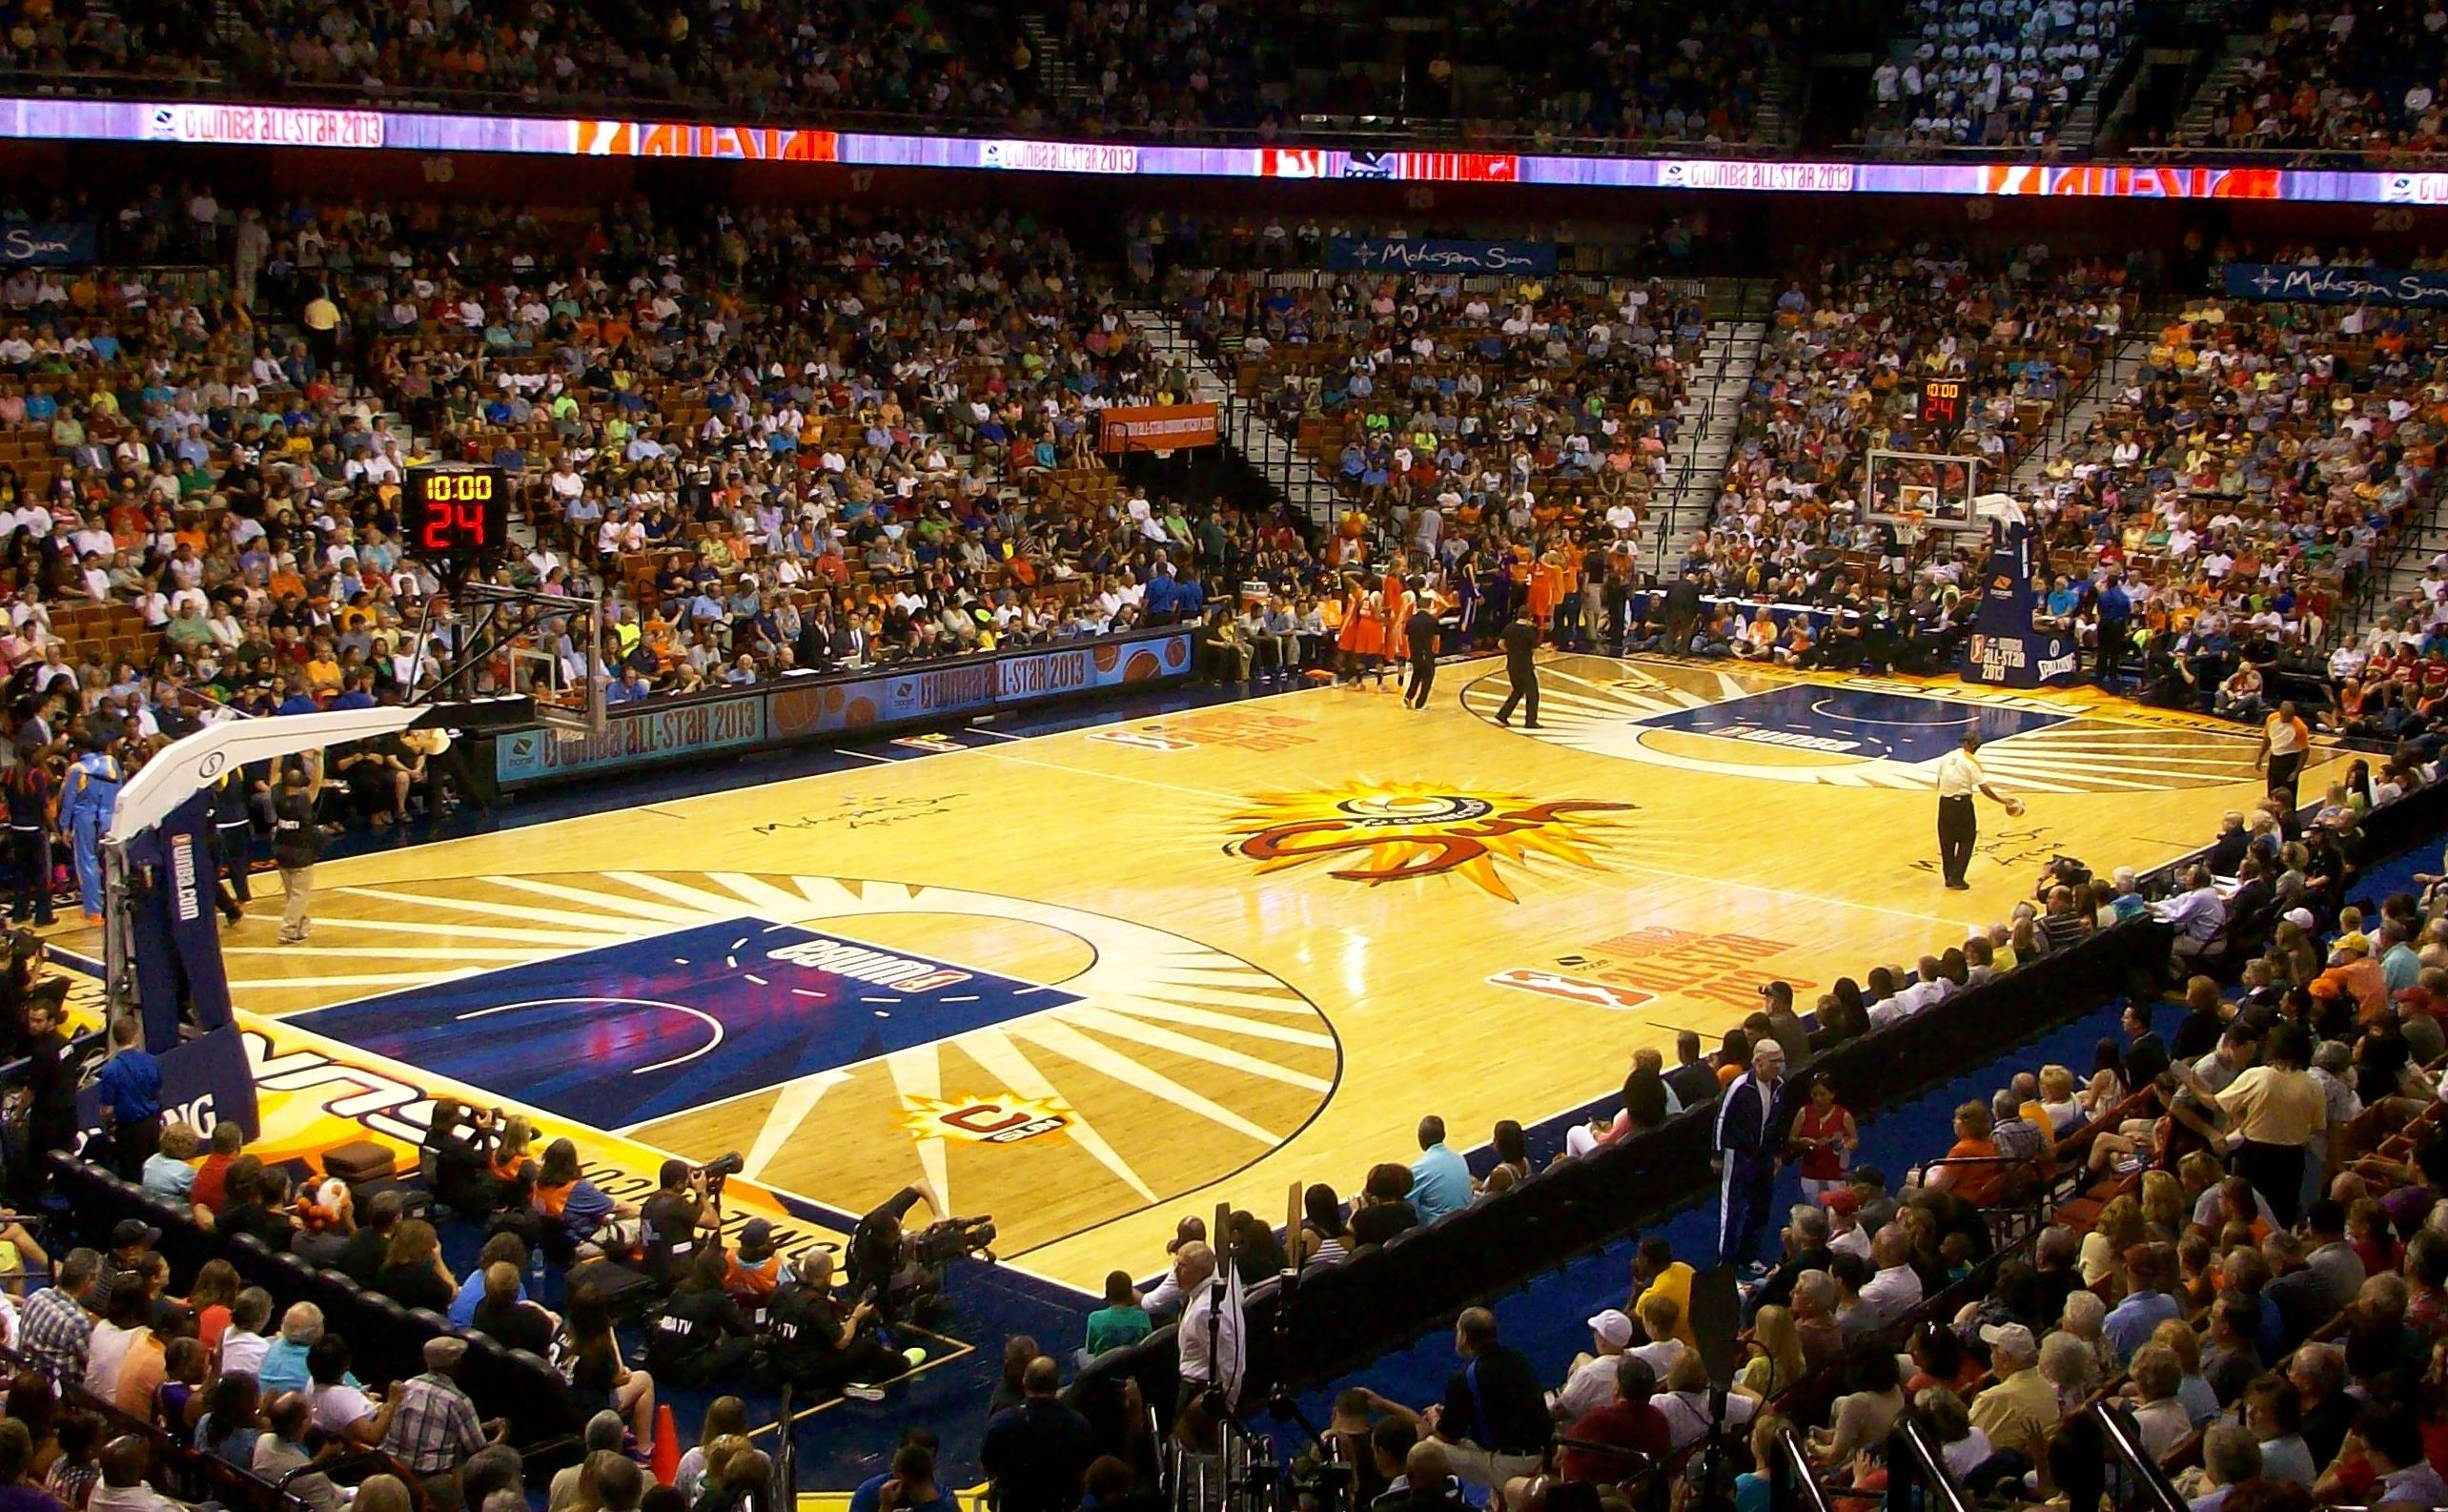 If you add it, they will come: All-Star game location important, but WNBA needs more to make it special